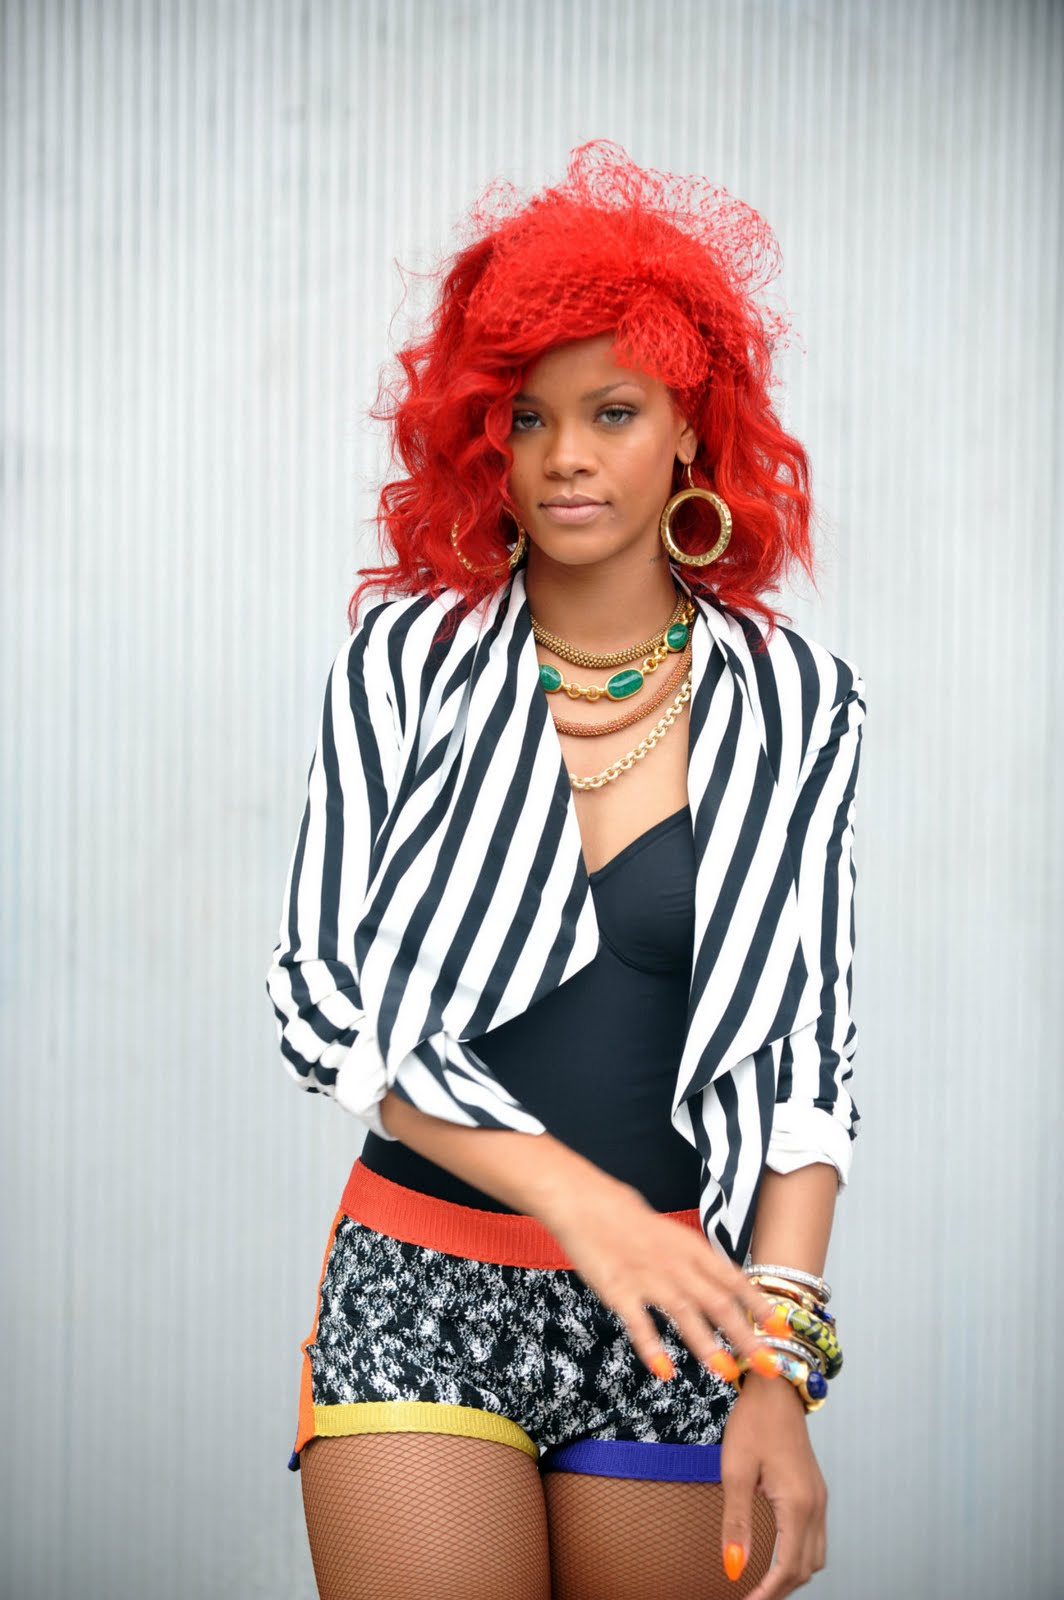 rihanna red hairstyles review hairstyles